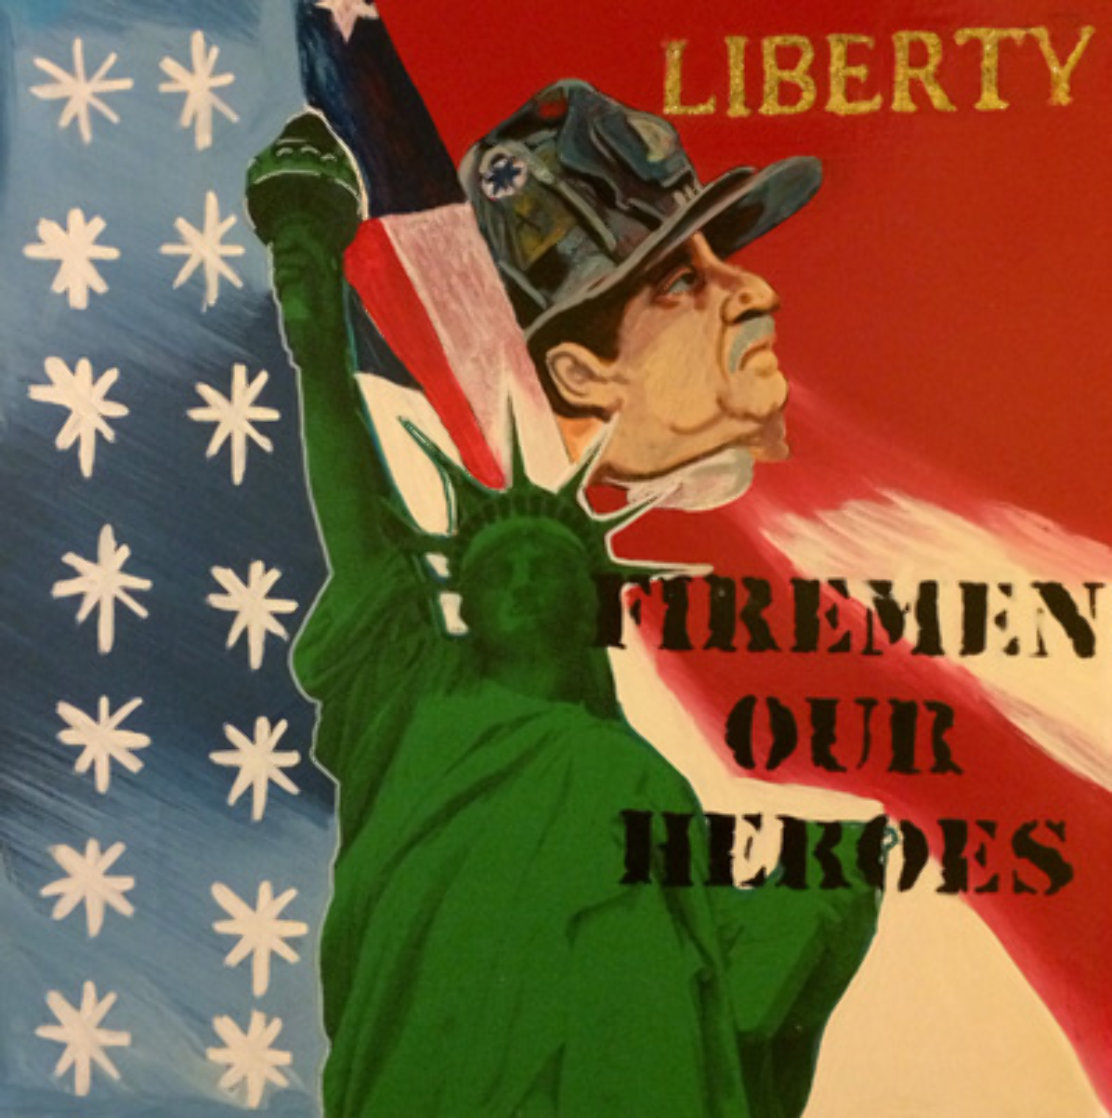 Liberty - Fireman Our Heroes 9/11 Tribute  Limited Edition Print by Steve Kaufman